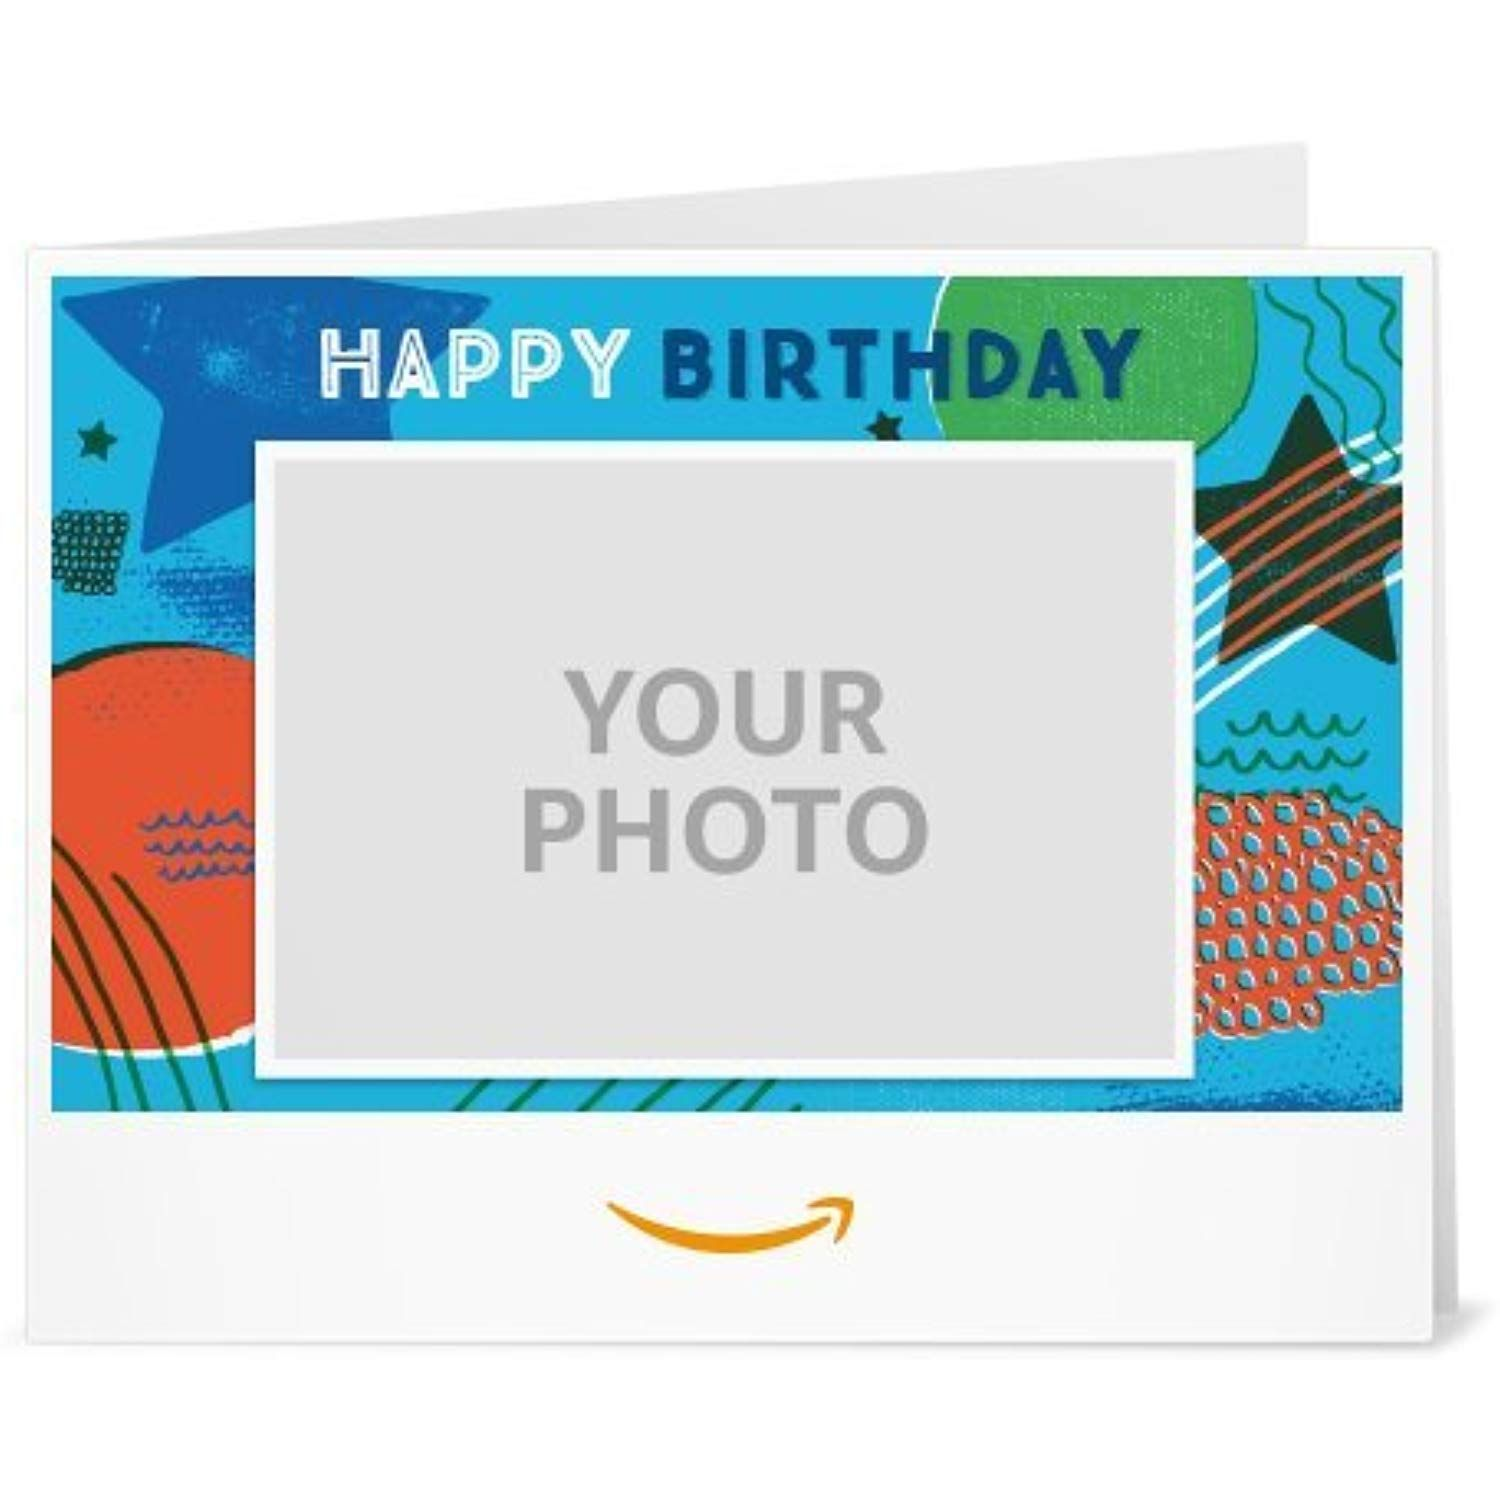 Amazon Com Gift Cards Print At Home Giftcards Gift Card Printing Gift Card Gifts